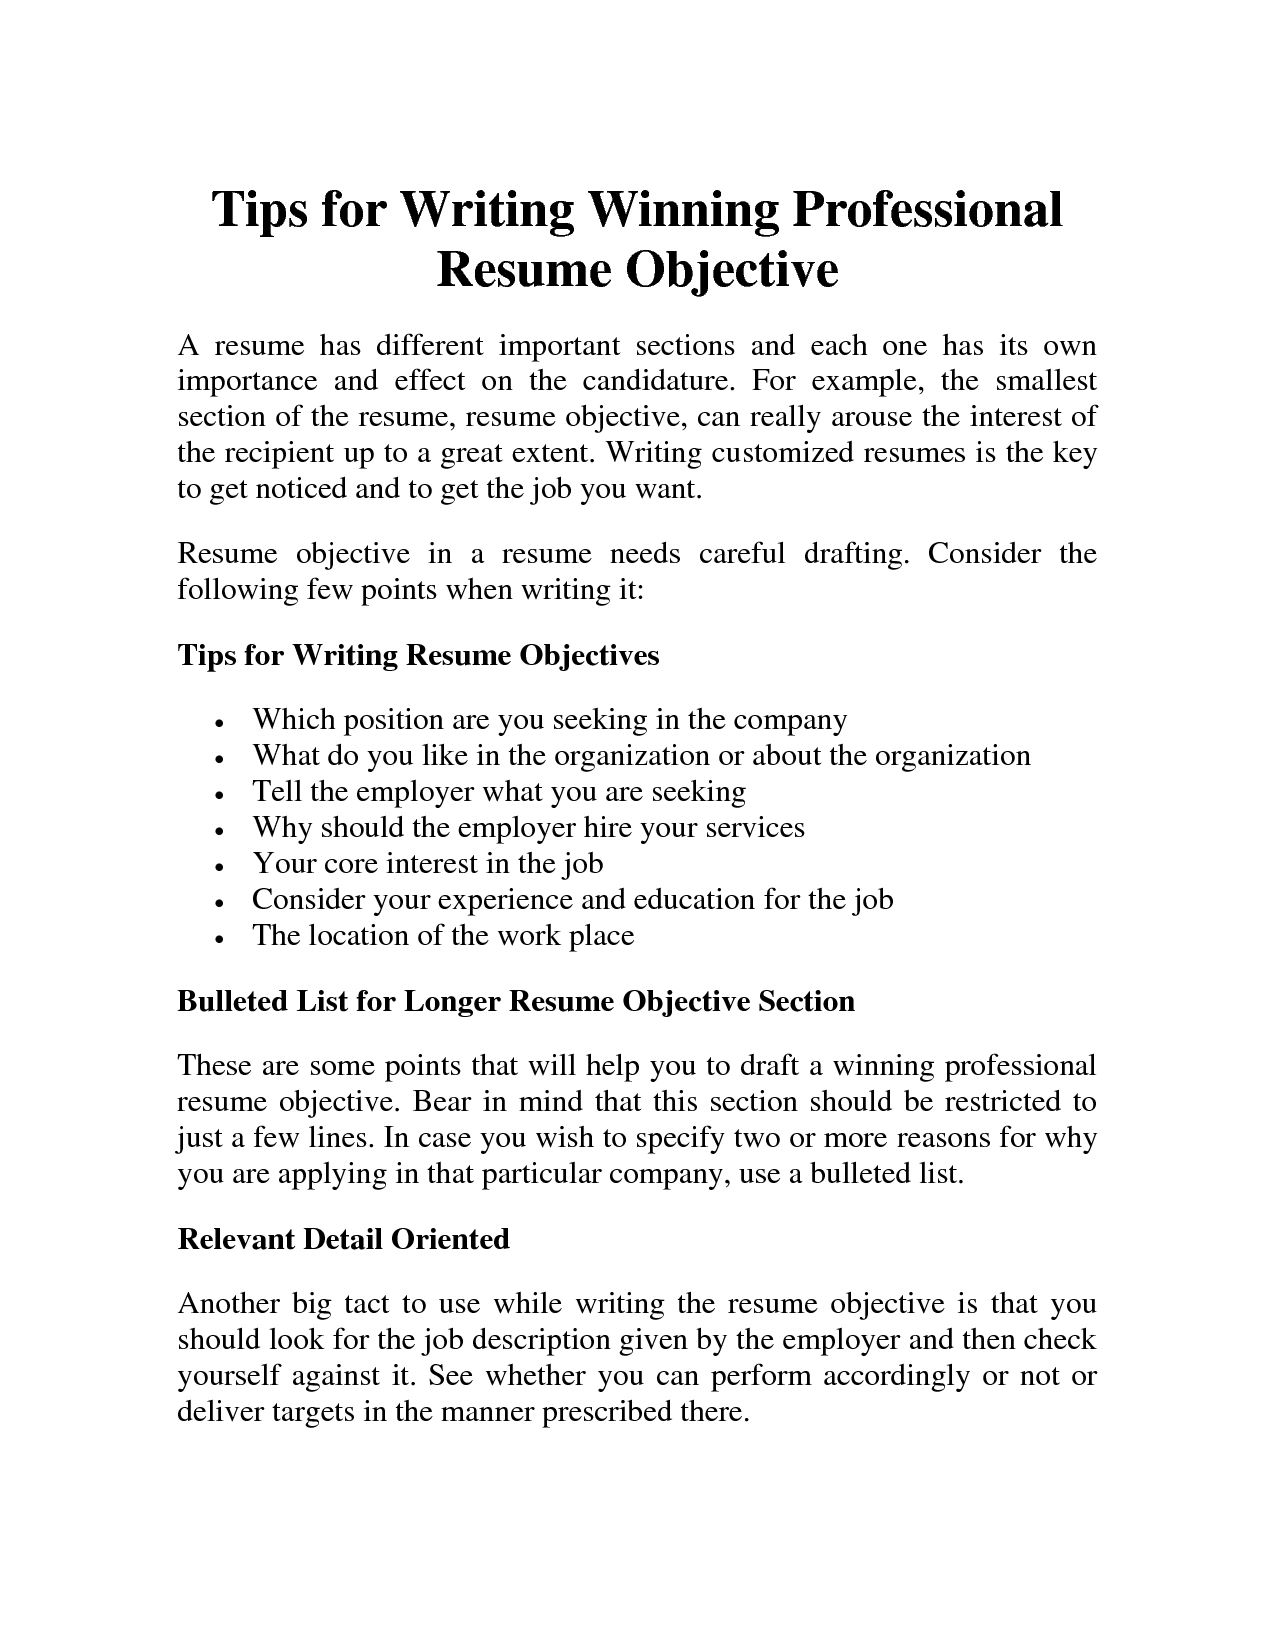 resume objective writing samples